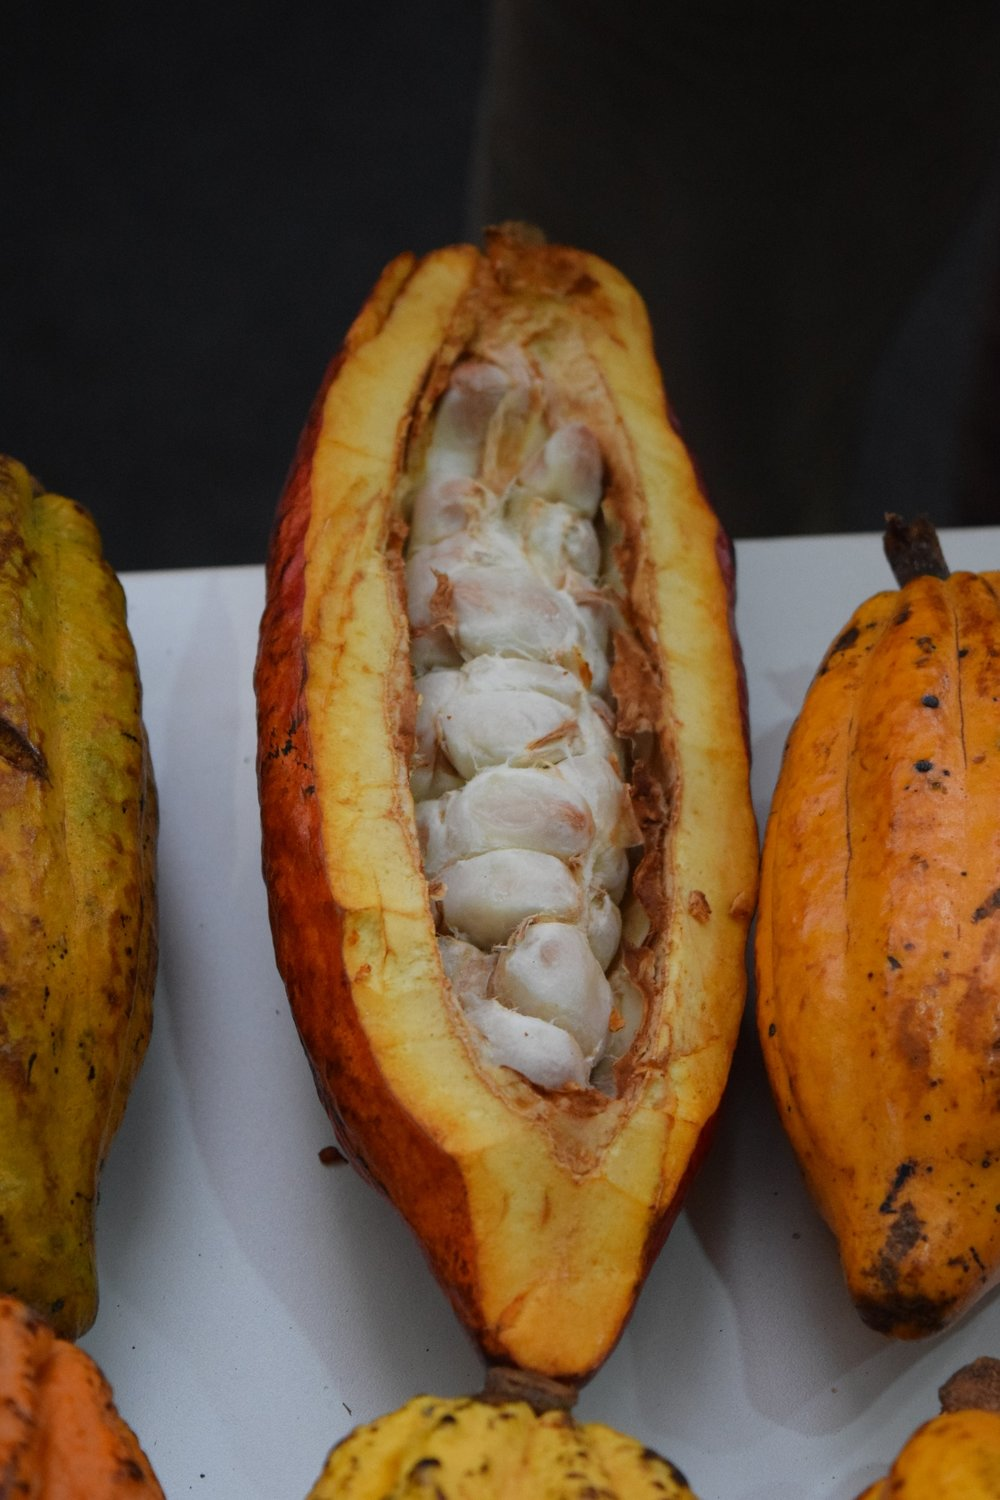 Cacao in the skin